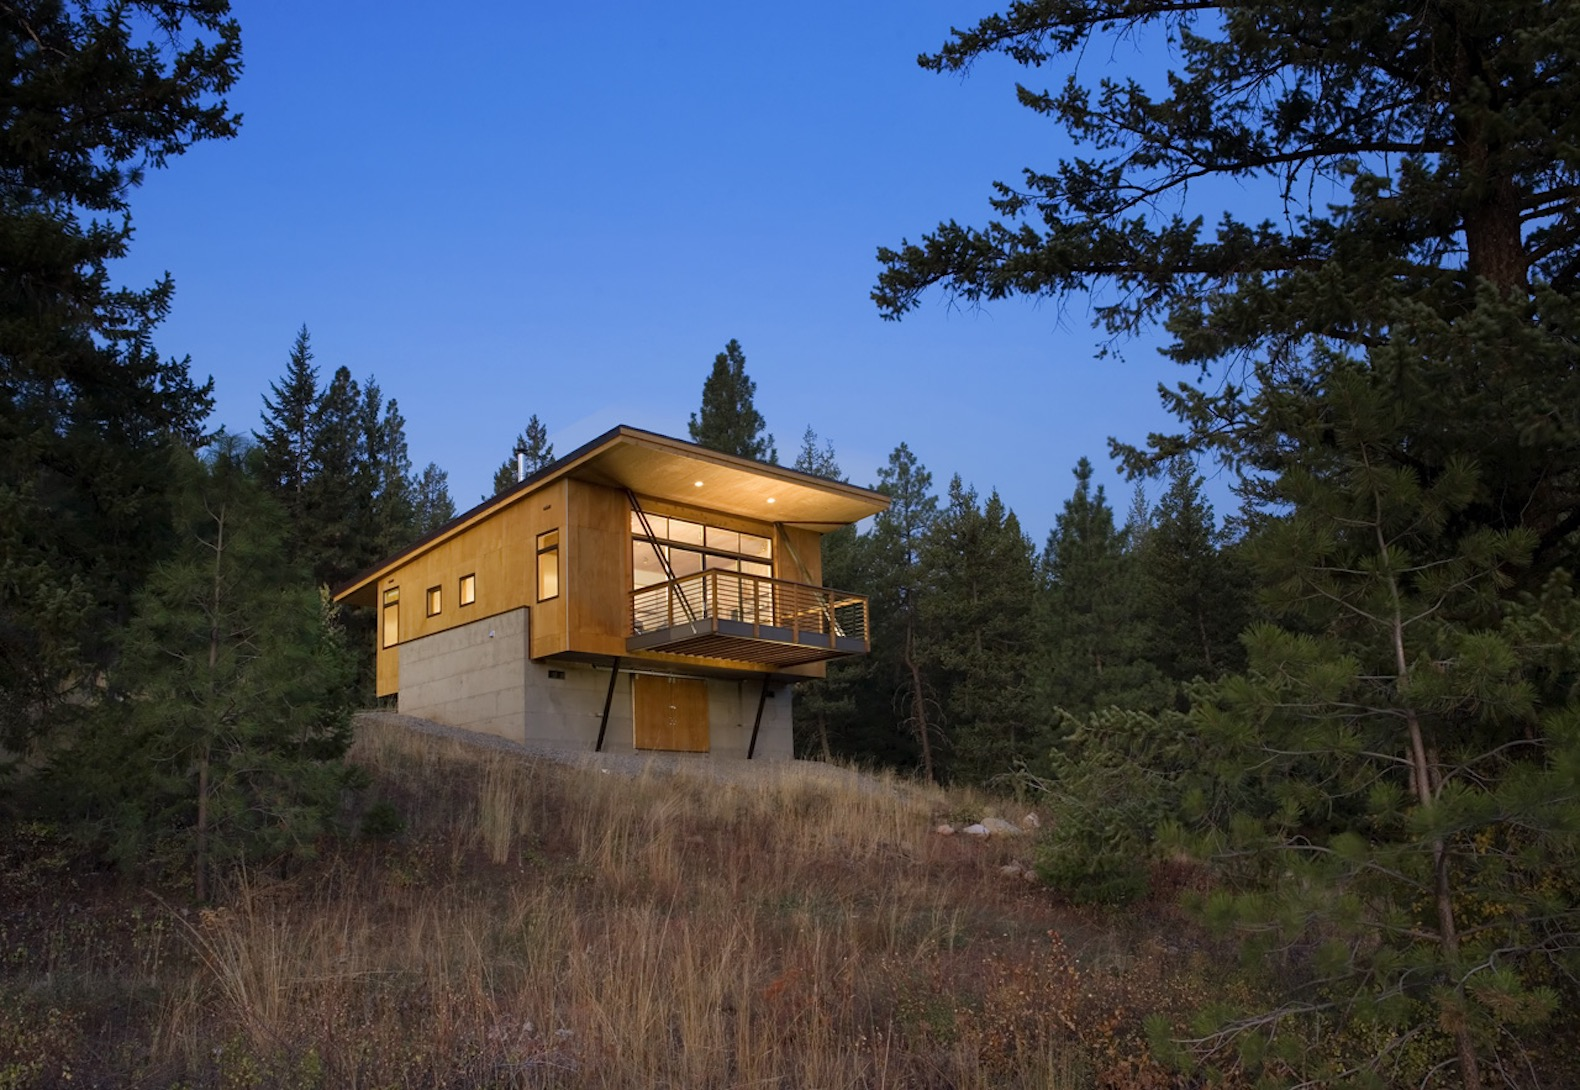 Pine Forest Cabin achieves beautiful modern design on a budget